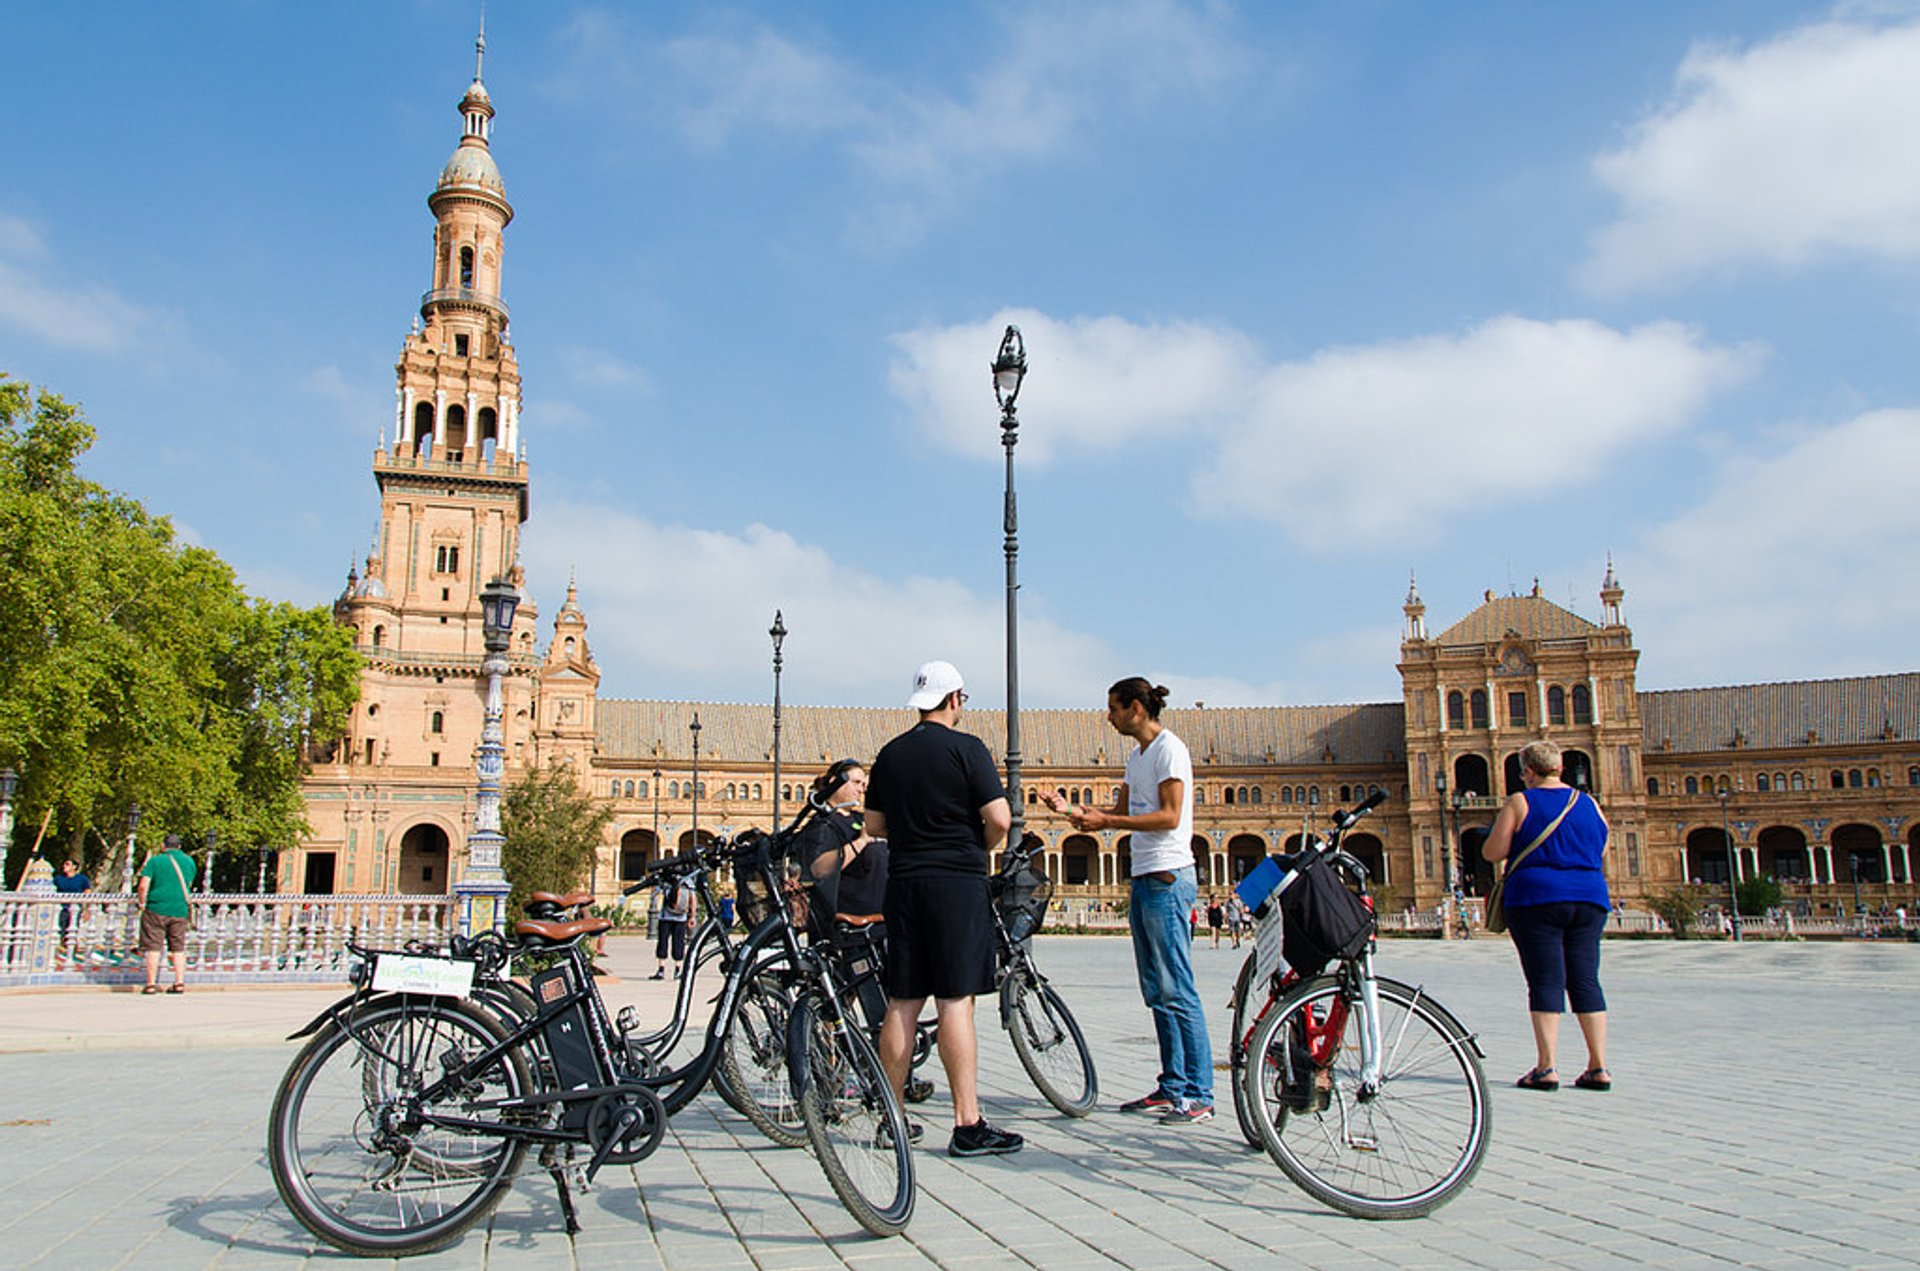 Cycling in Seville 2020 - Best Time